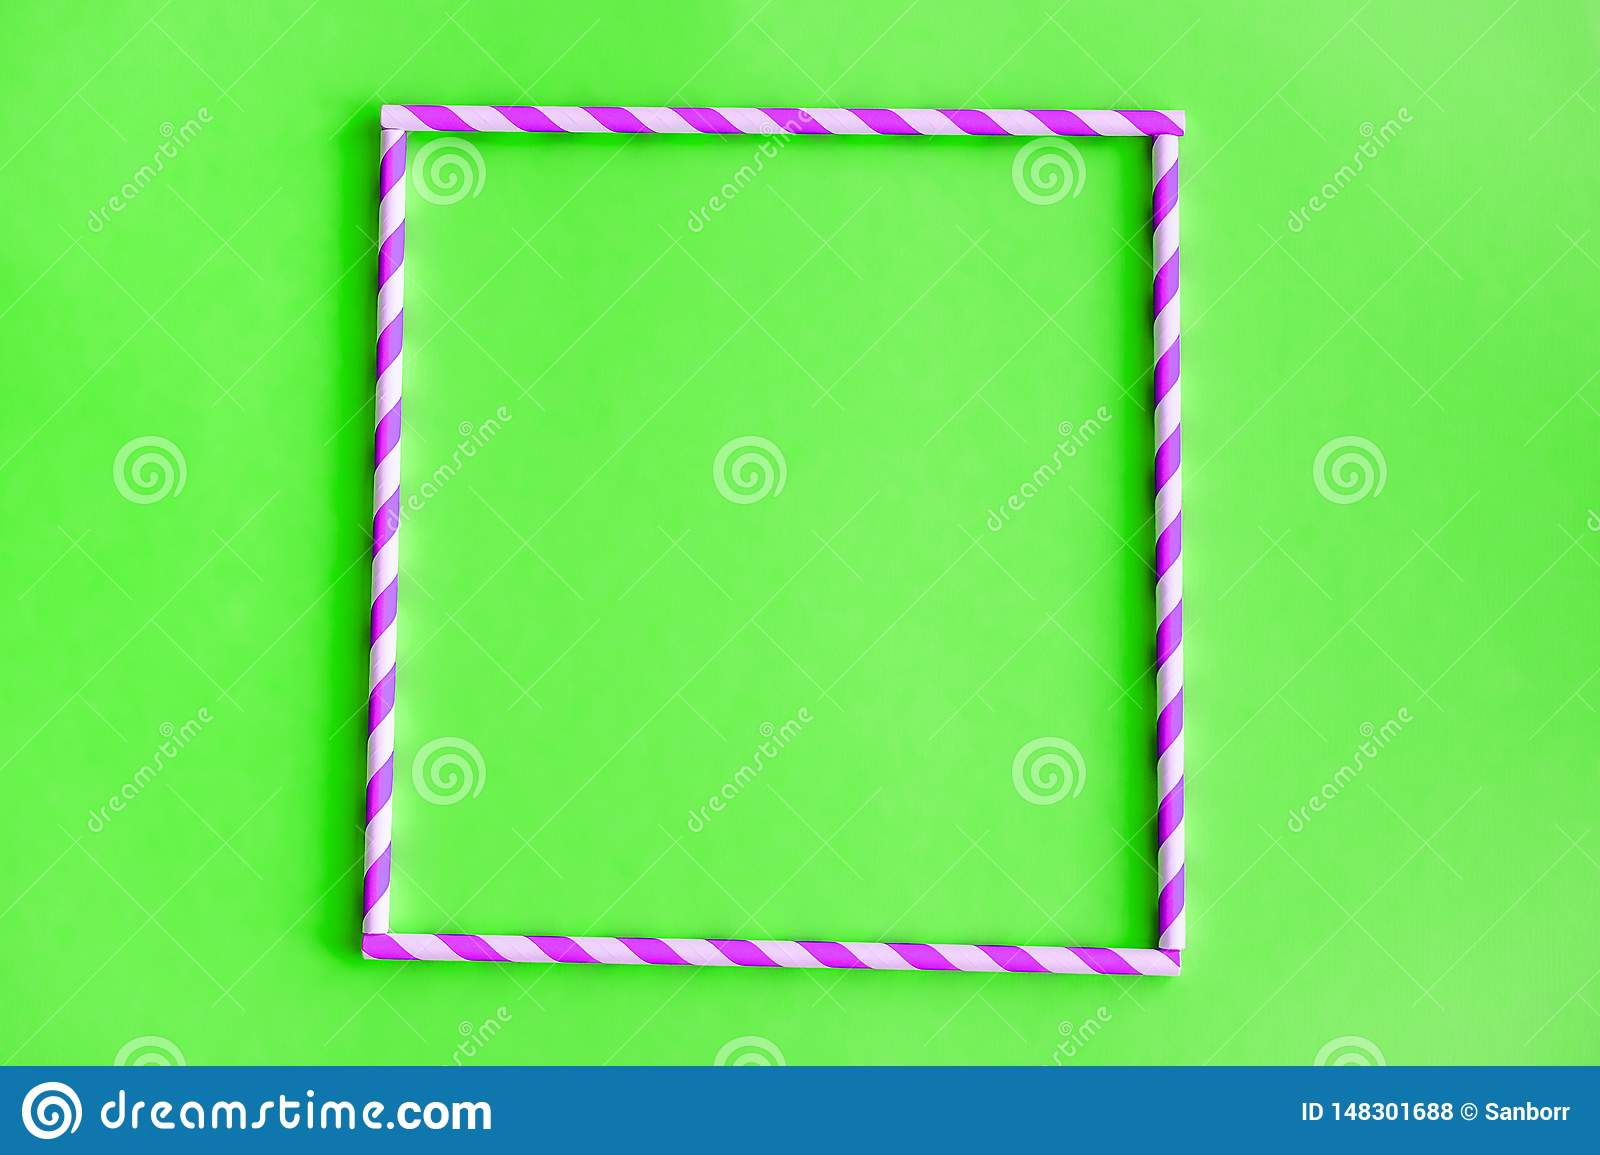 Square Of Colored, Reusable, Paper, Striped, Pink Straws For